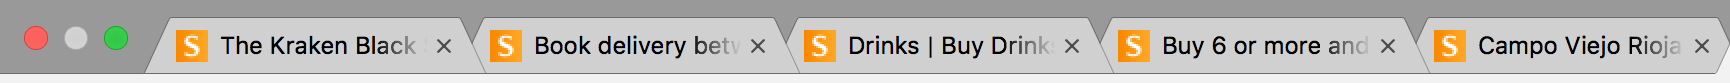 Browser tabs for five different Sainsbury's pages, all showing a few words for what each page is about.